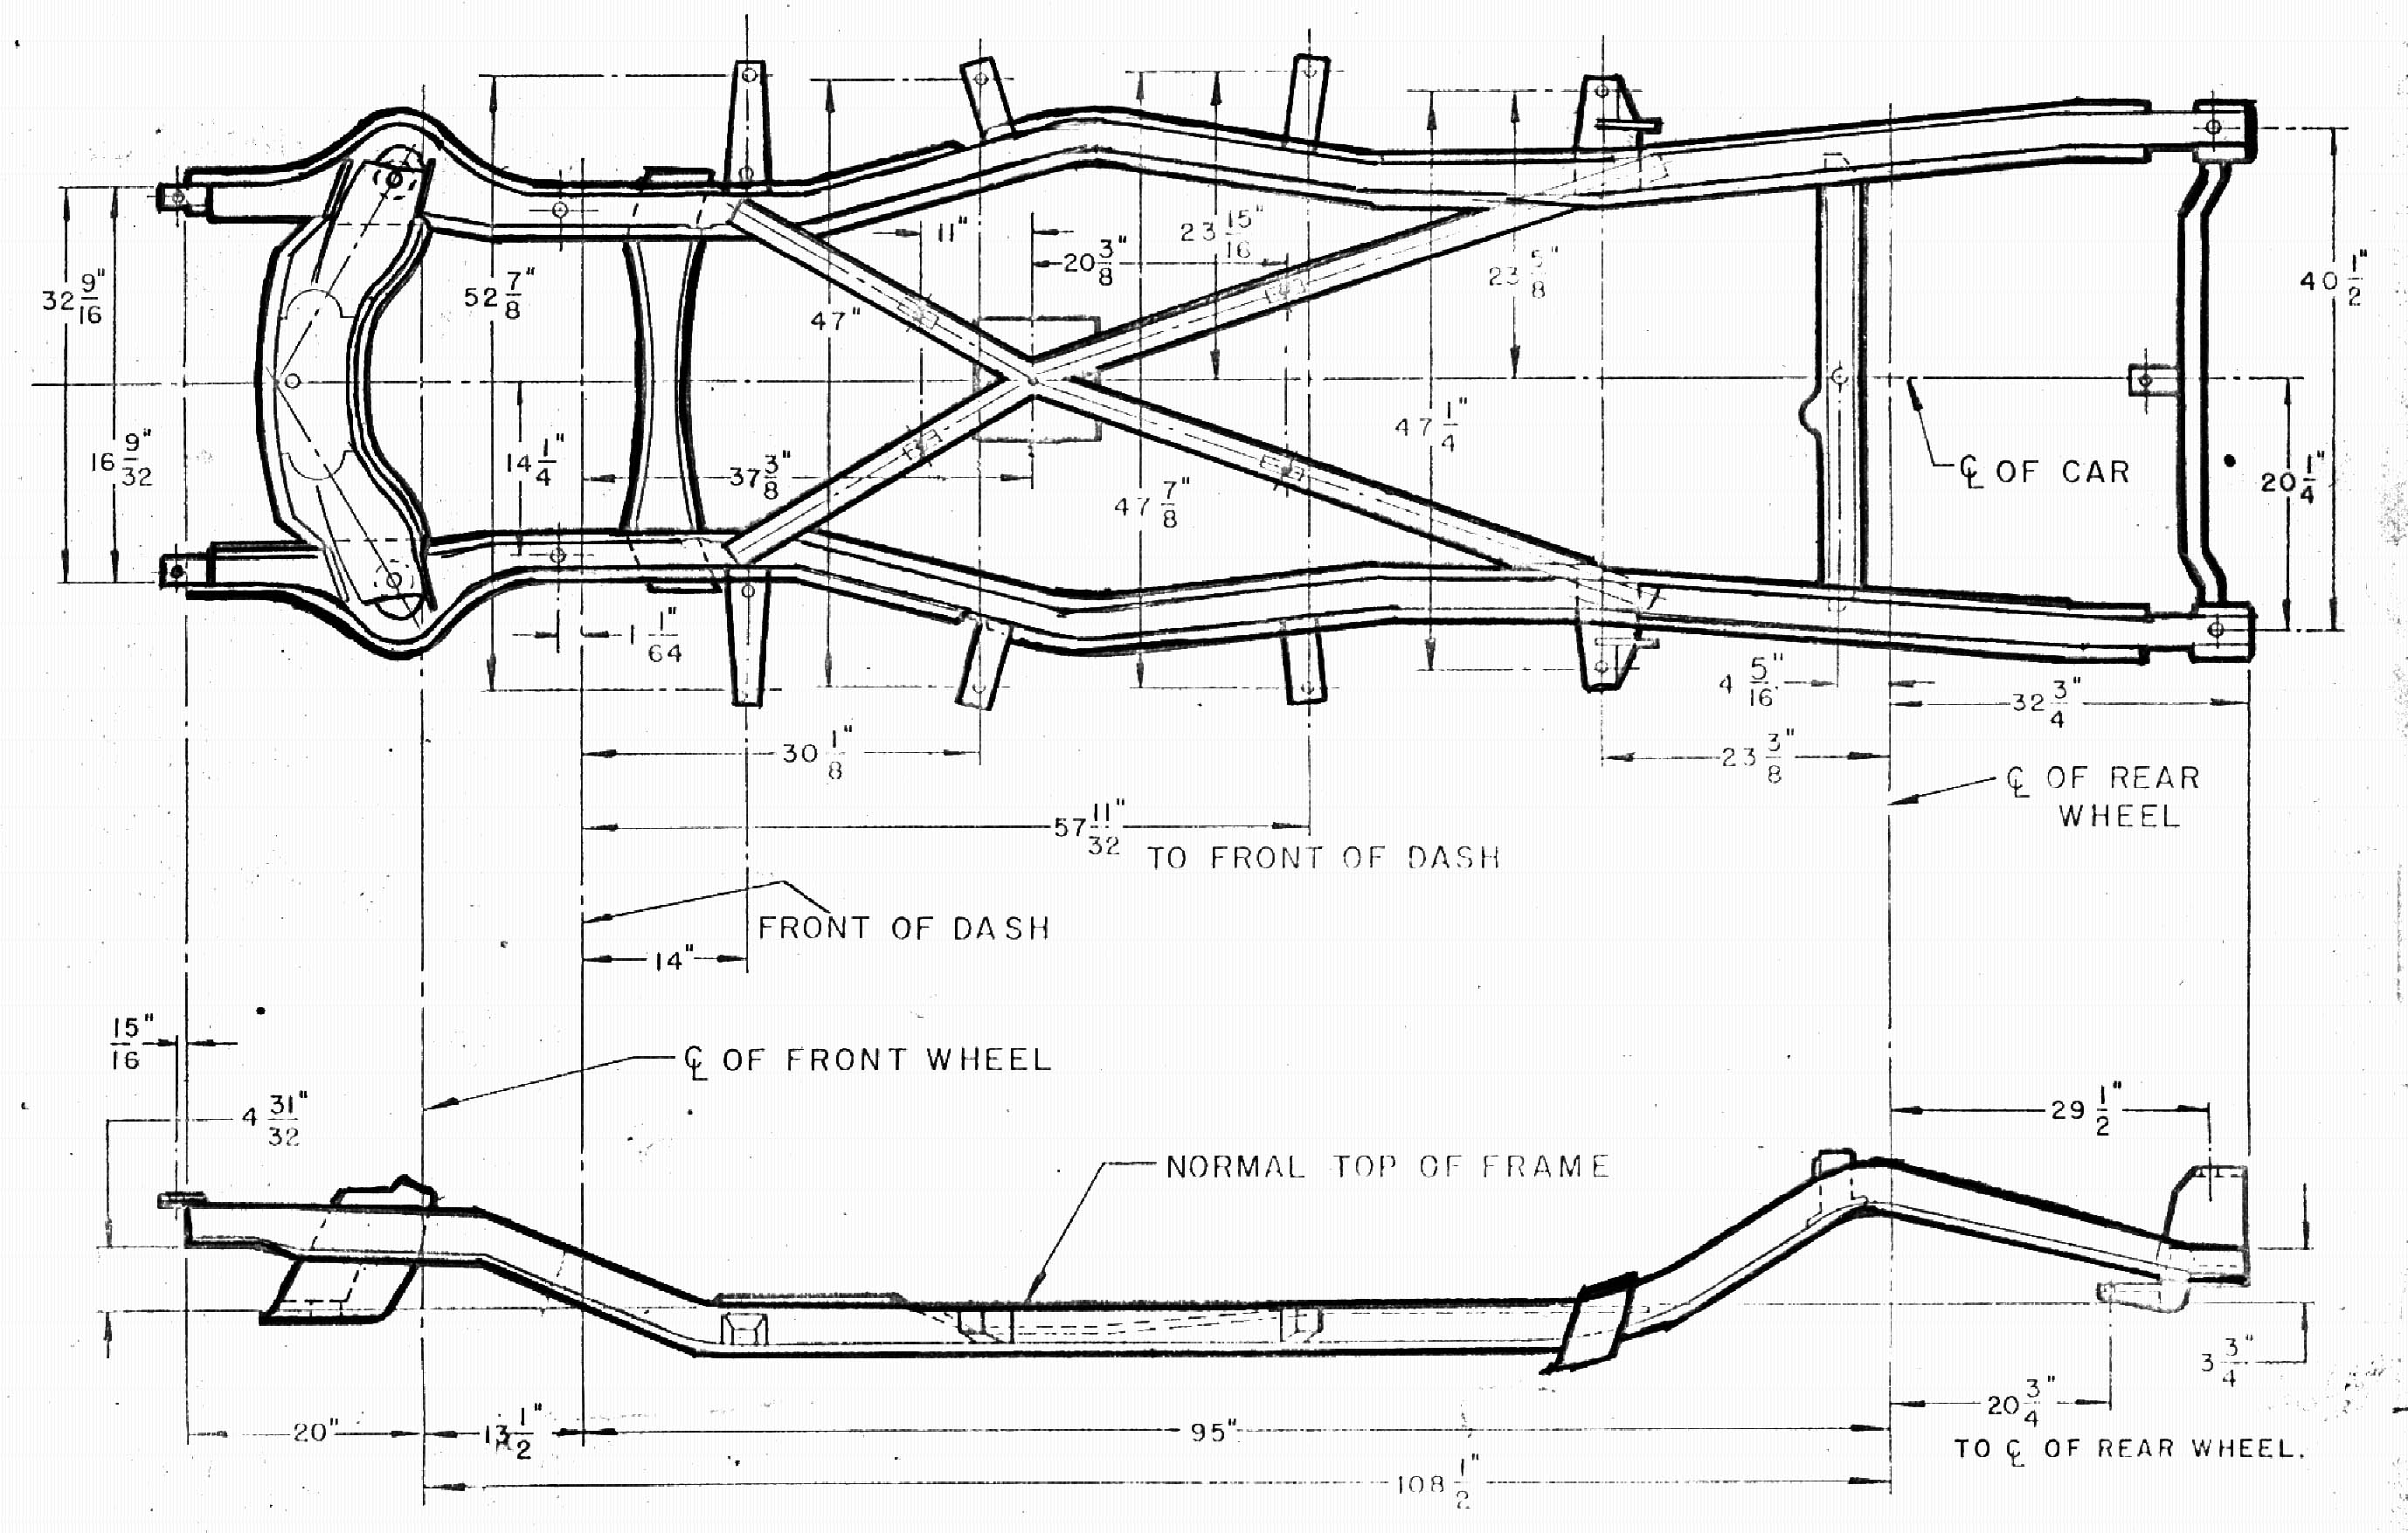 1964 Ford Galaxie Color Wiring Diagram